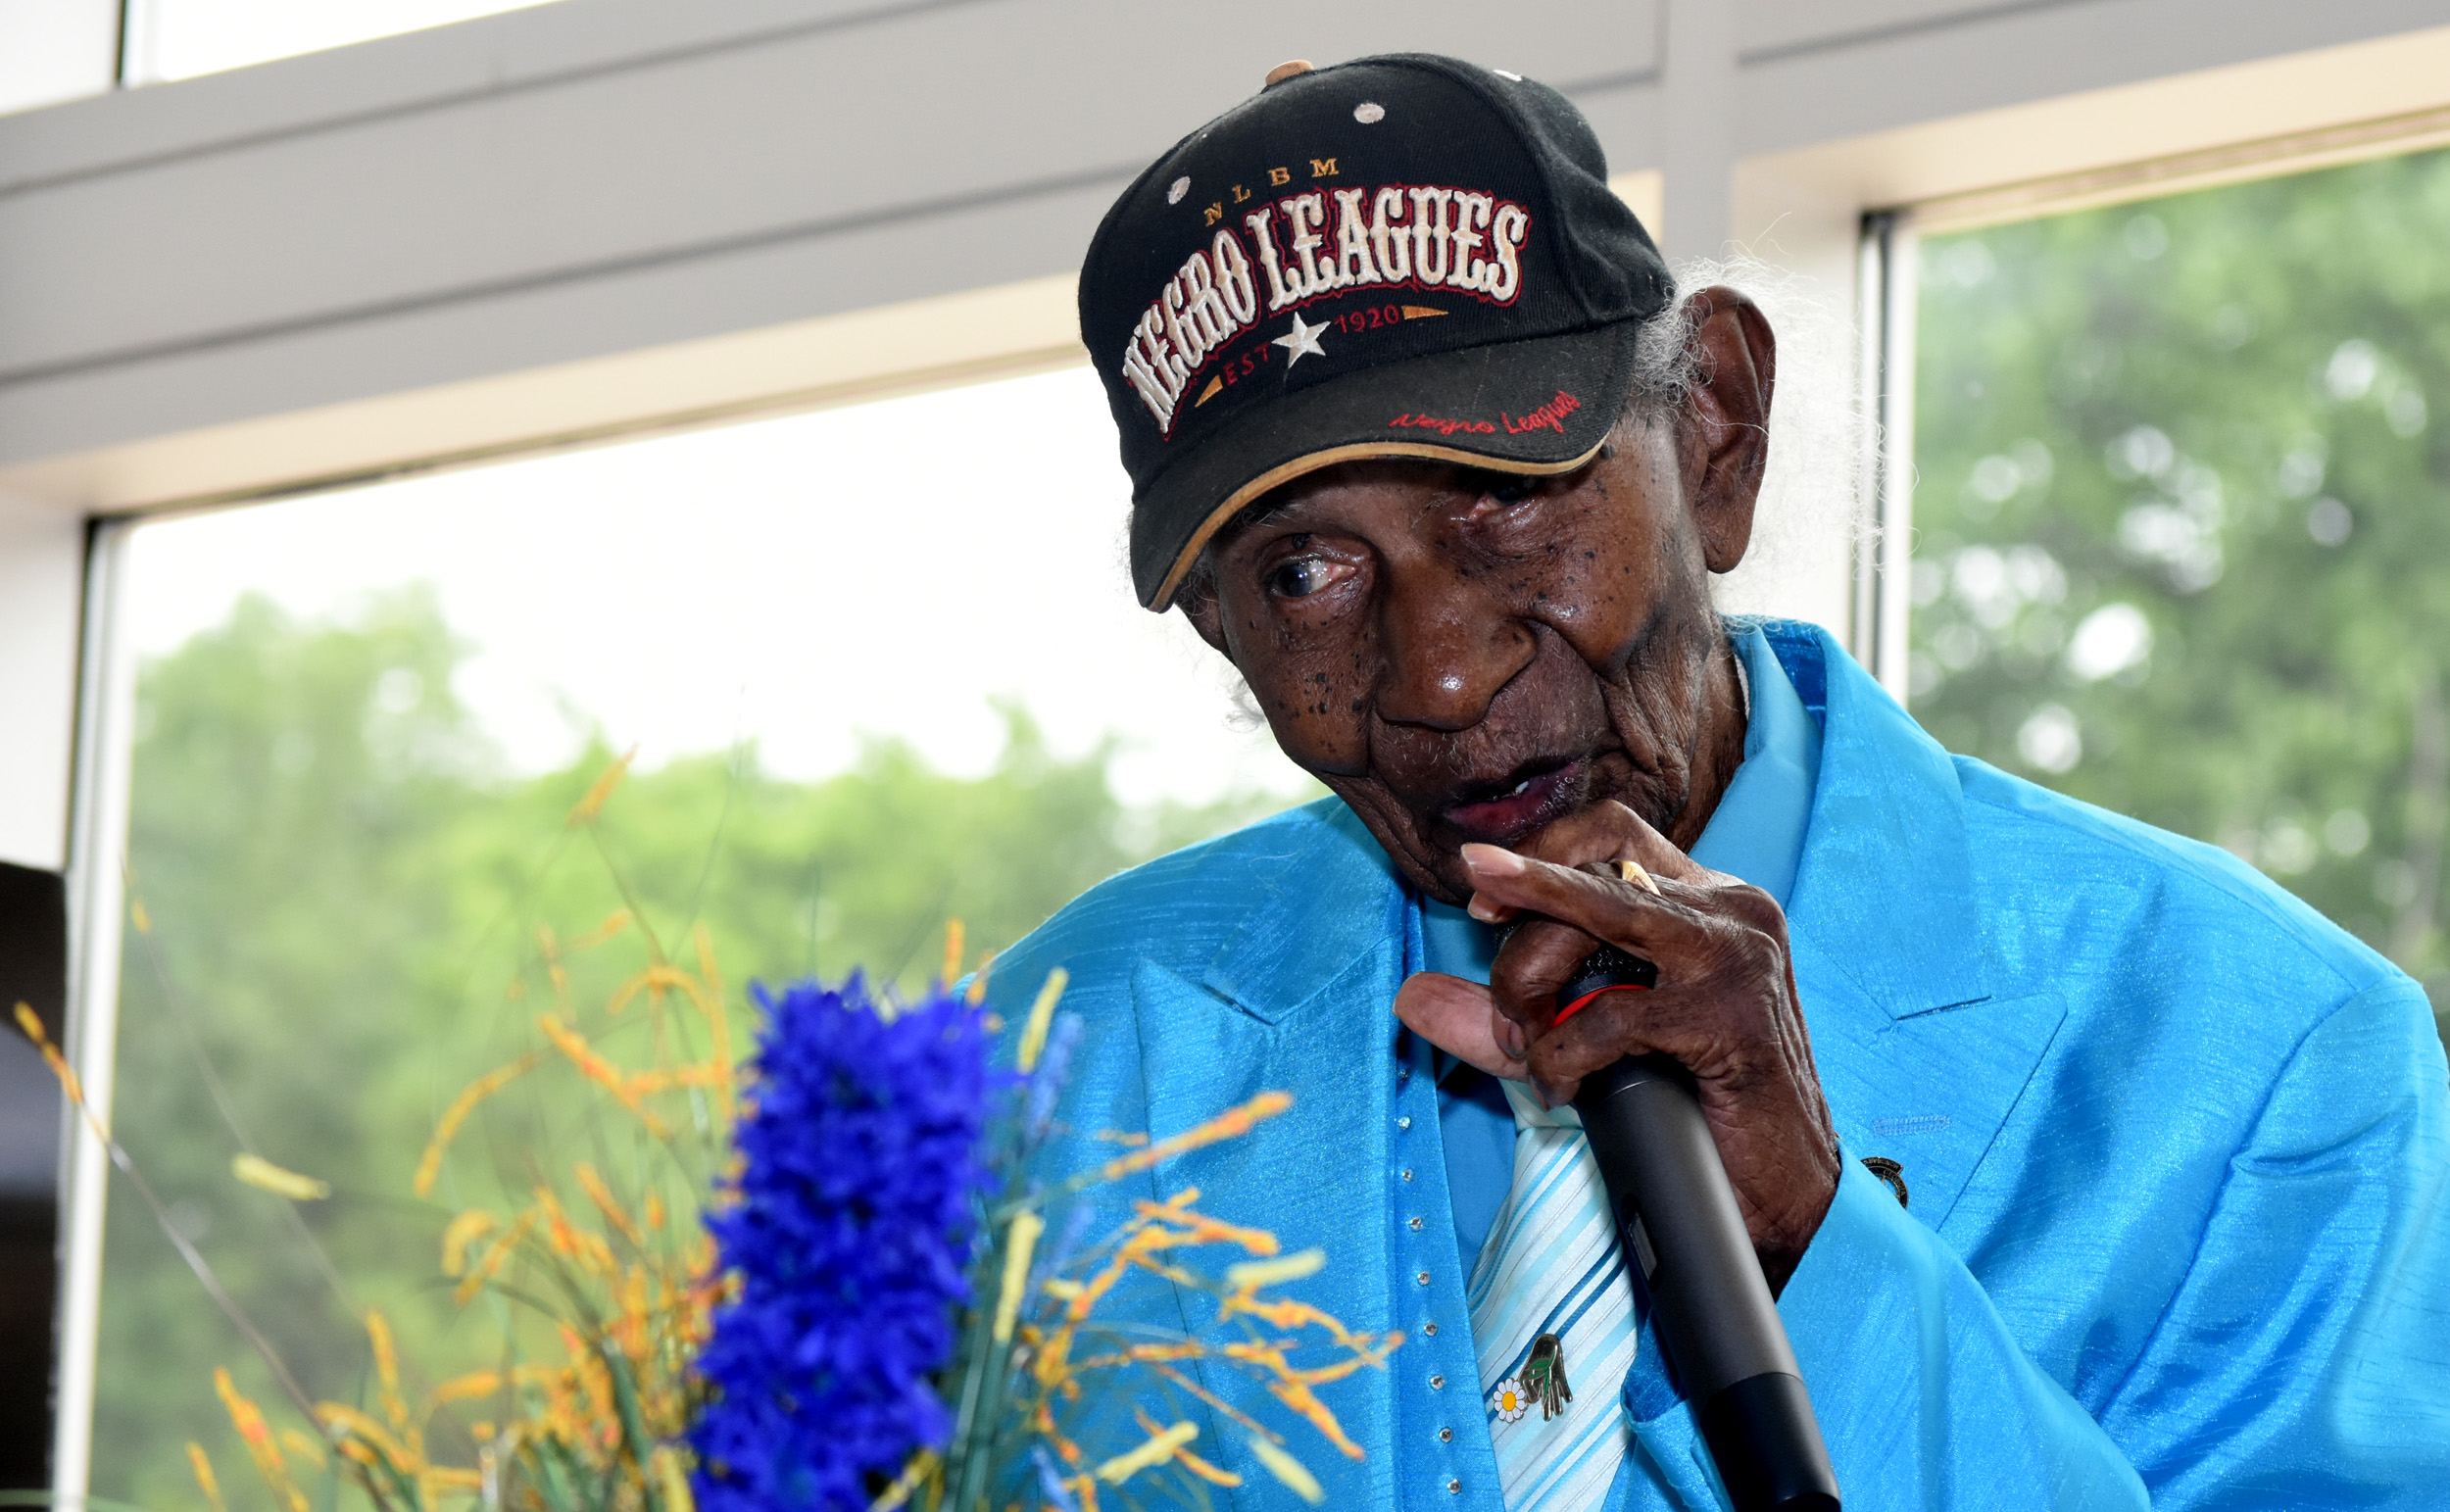 Roosevelt Jackson, 99, the oldest living Negro League baseball player. (Solomon Crenshaw Jr. photo)